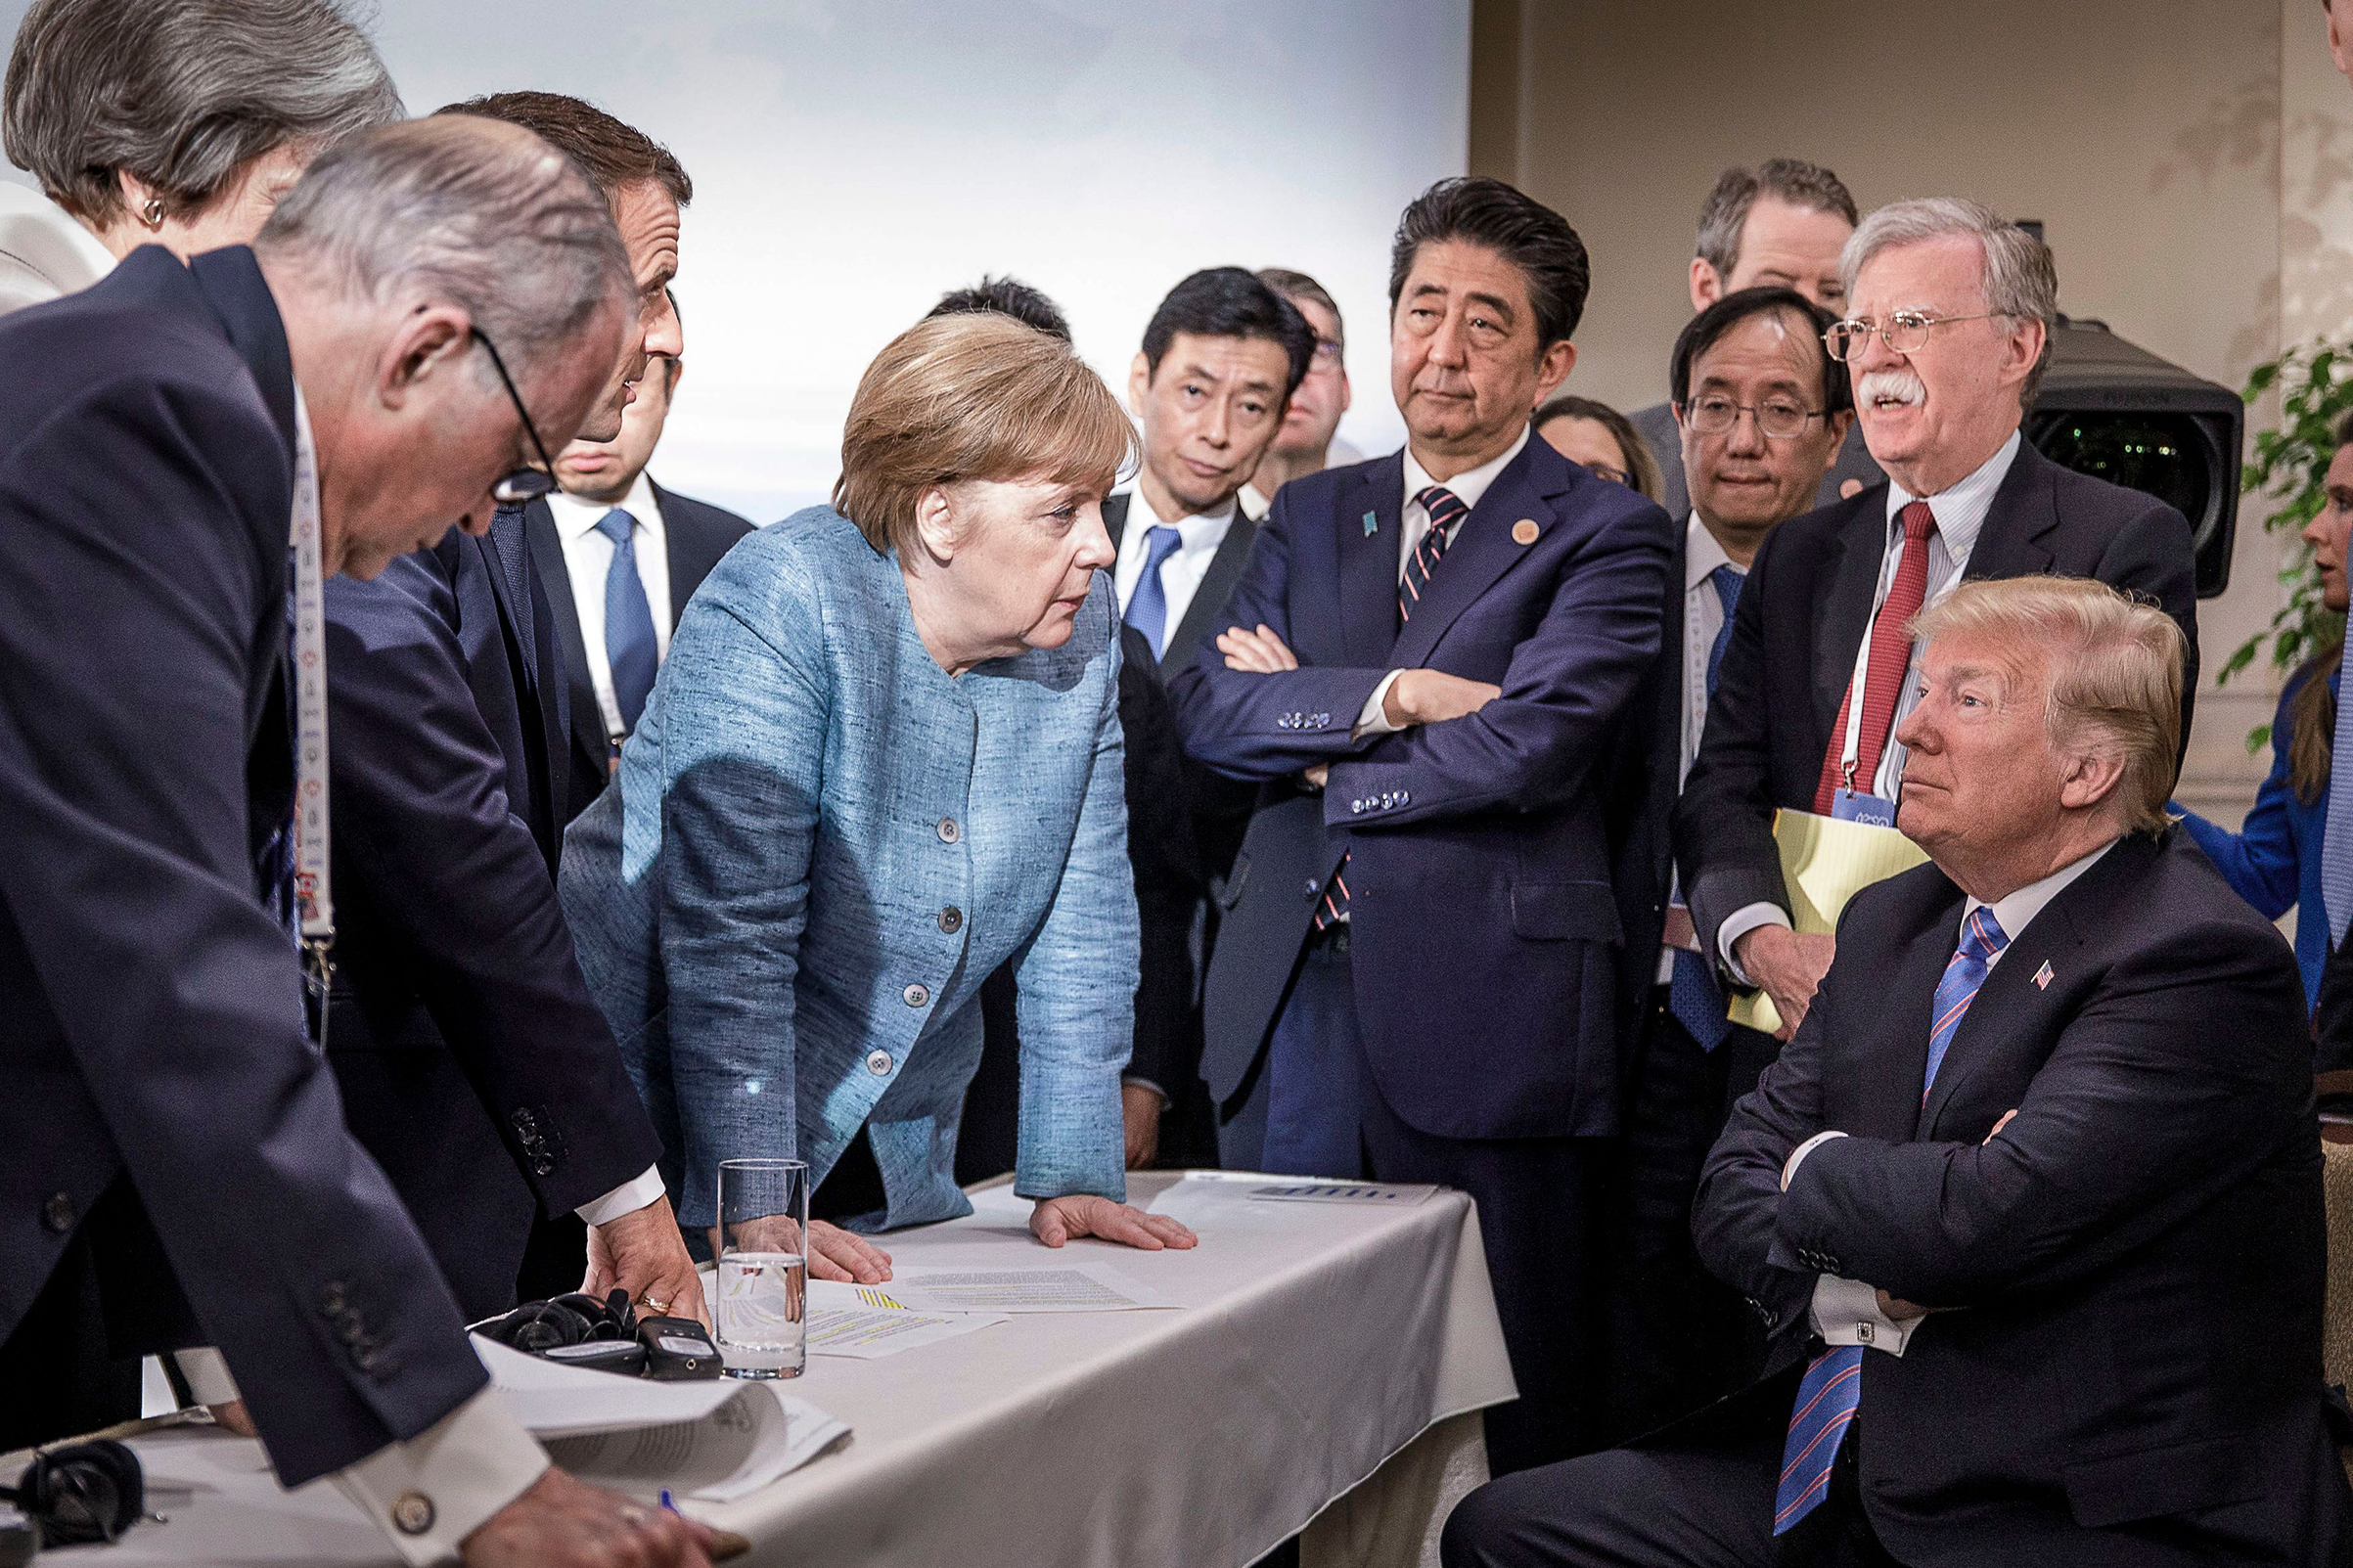 A handout photograph from the German government shows a group of leaders at the Group of Seven summit, including German Chancellor Angela Merkel and President Trump, in Canada on June 9, 2018.